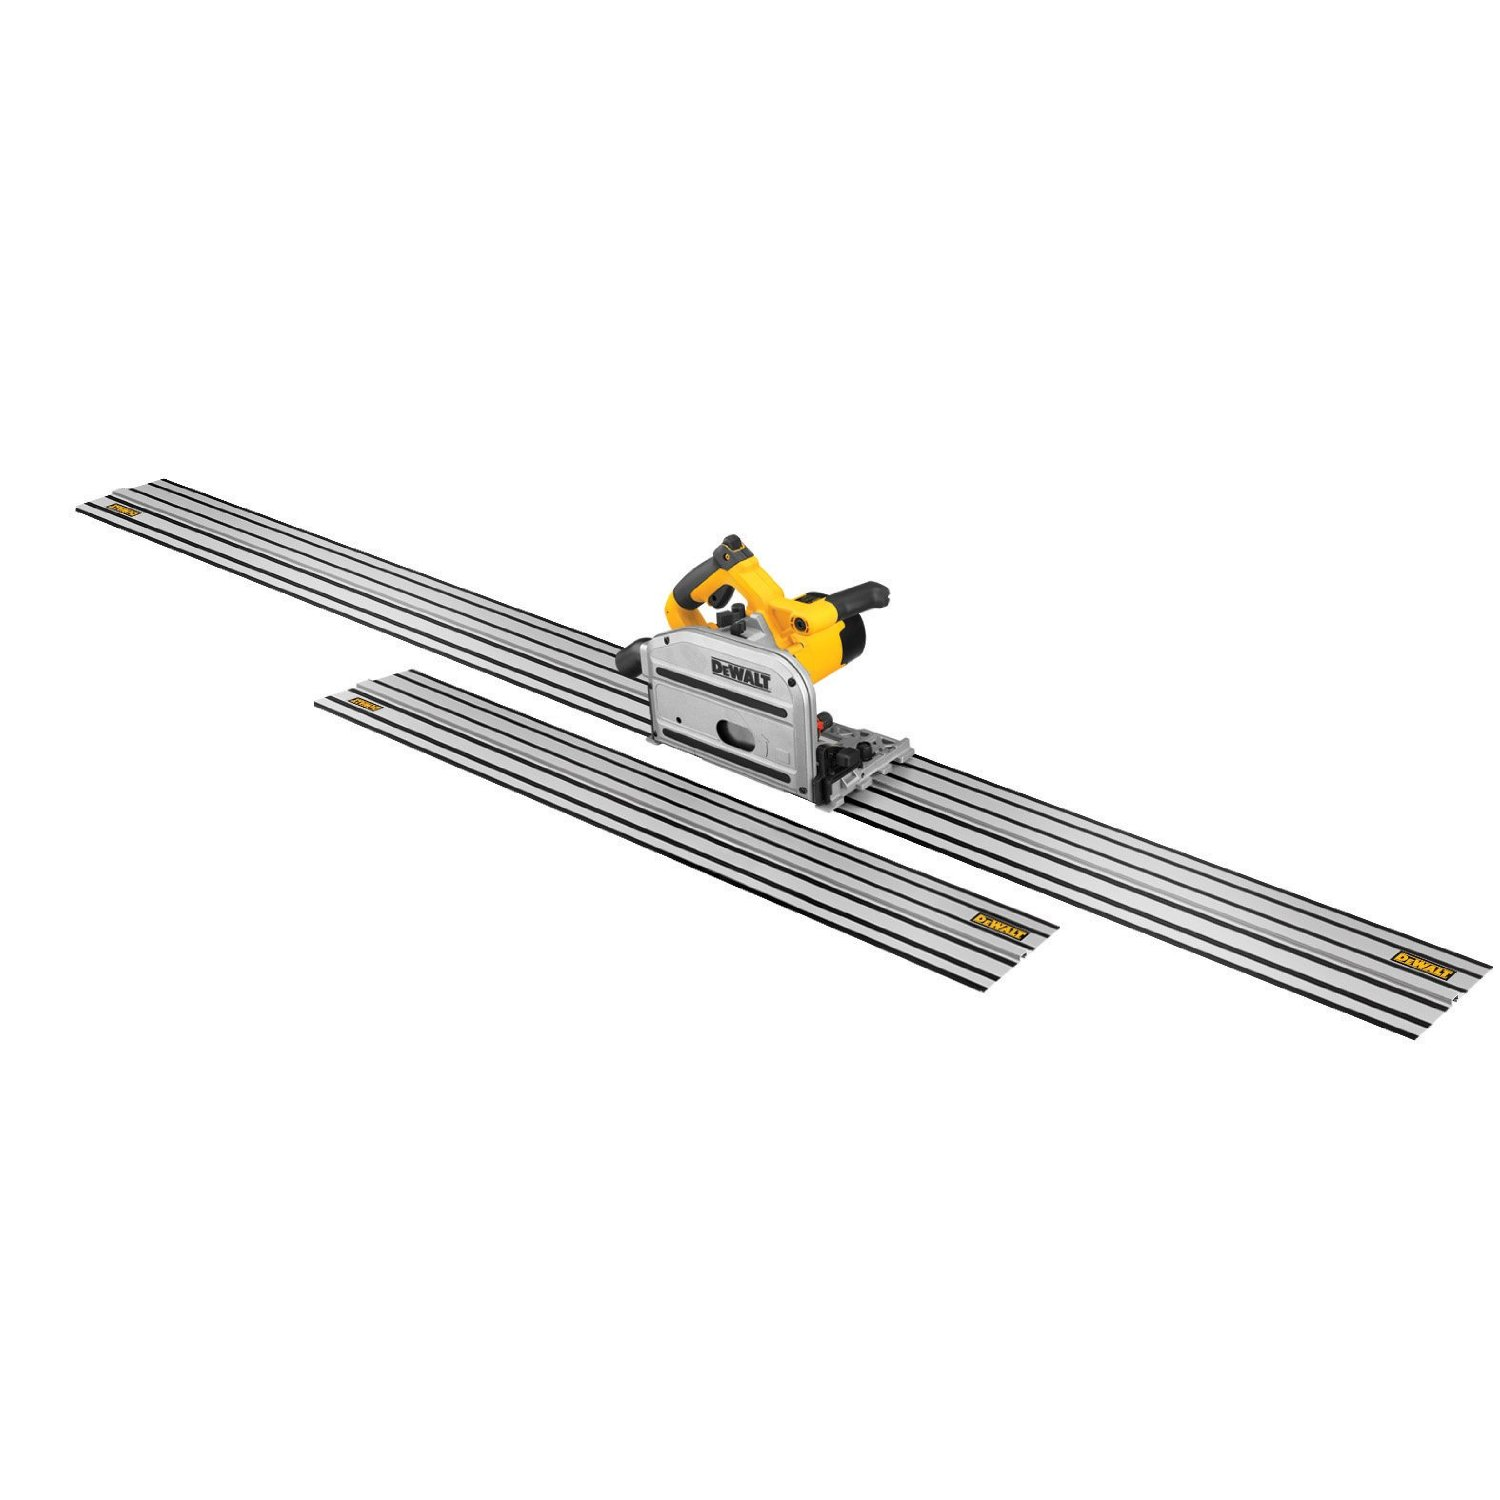 Dewalt Track Saw Review And Specs